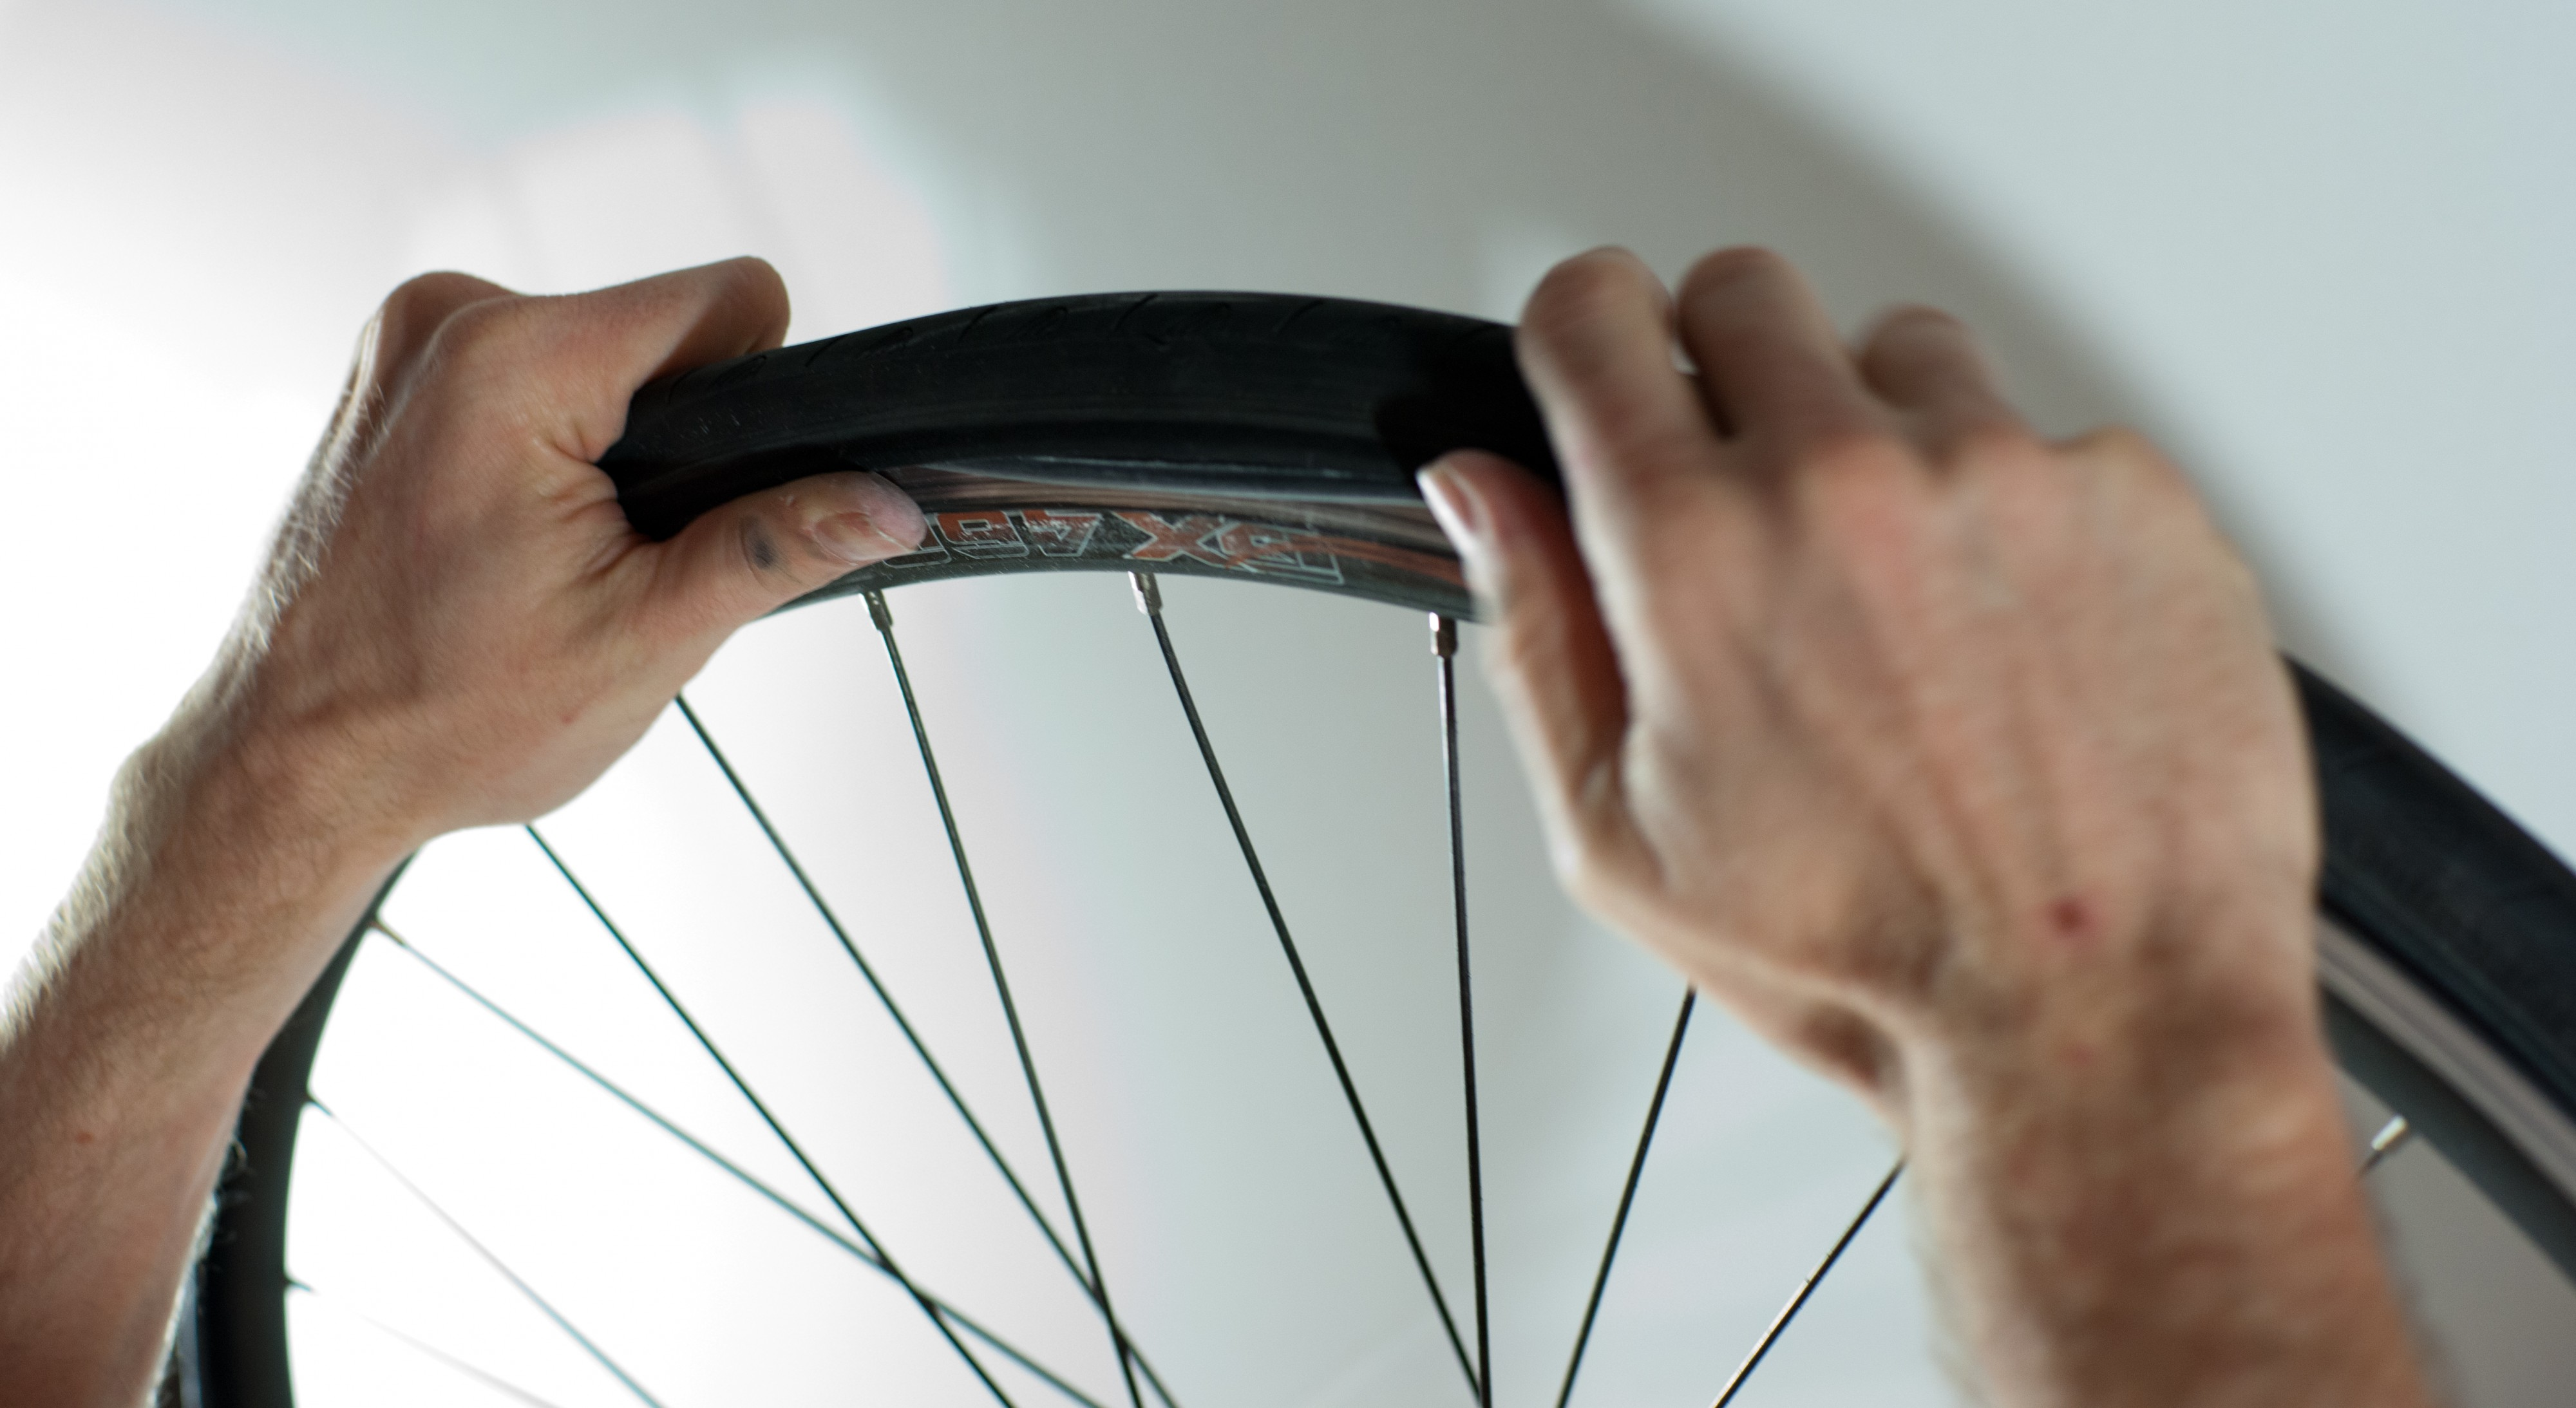 Changing an inner tube - Adjusting the tire (2)